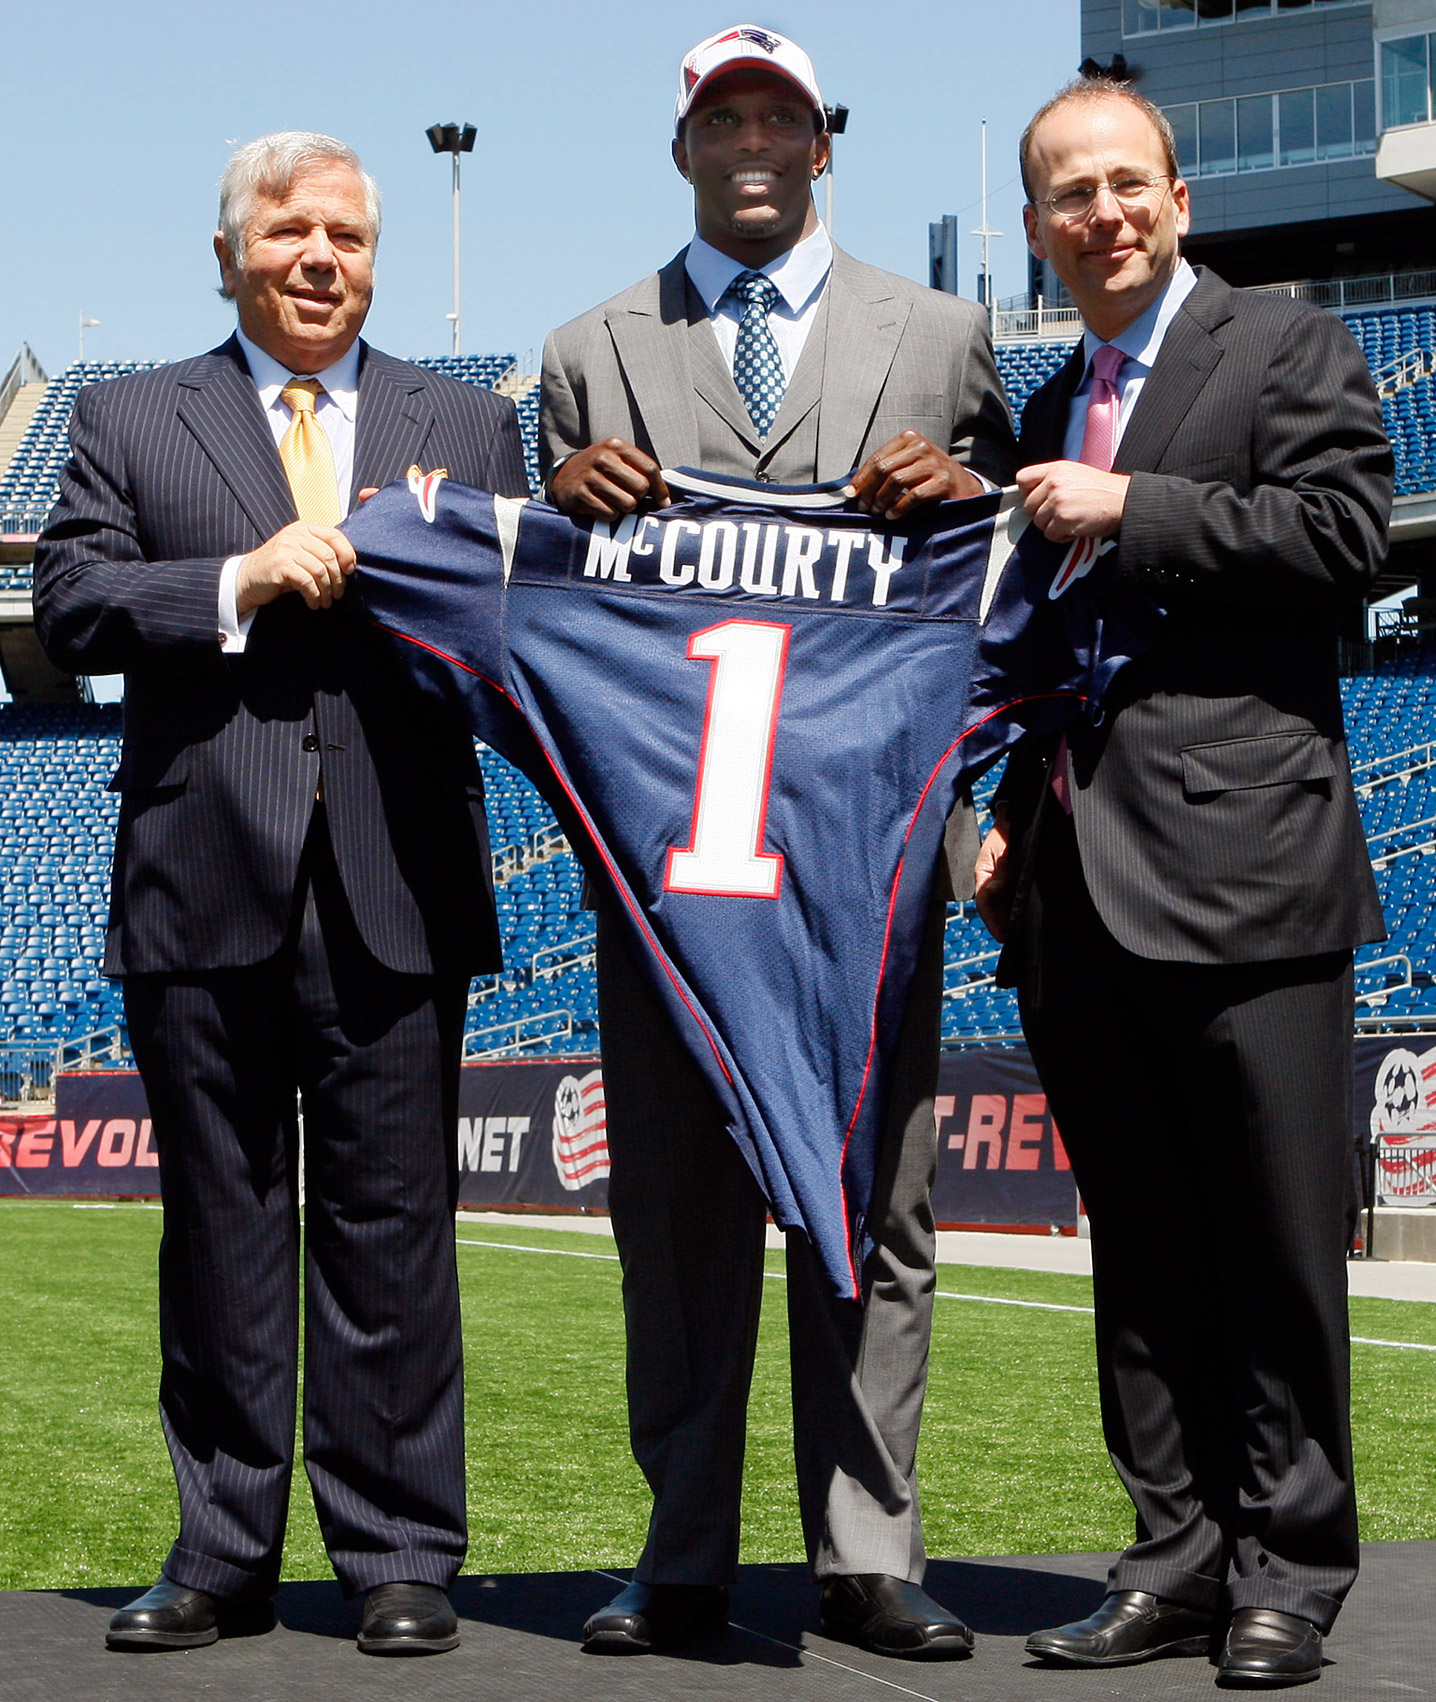 2010: McCourty over Bryant in double trade-down